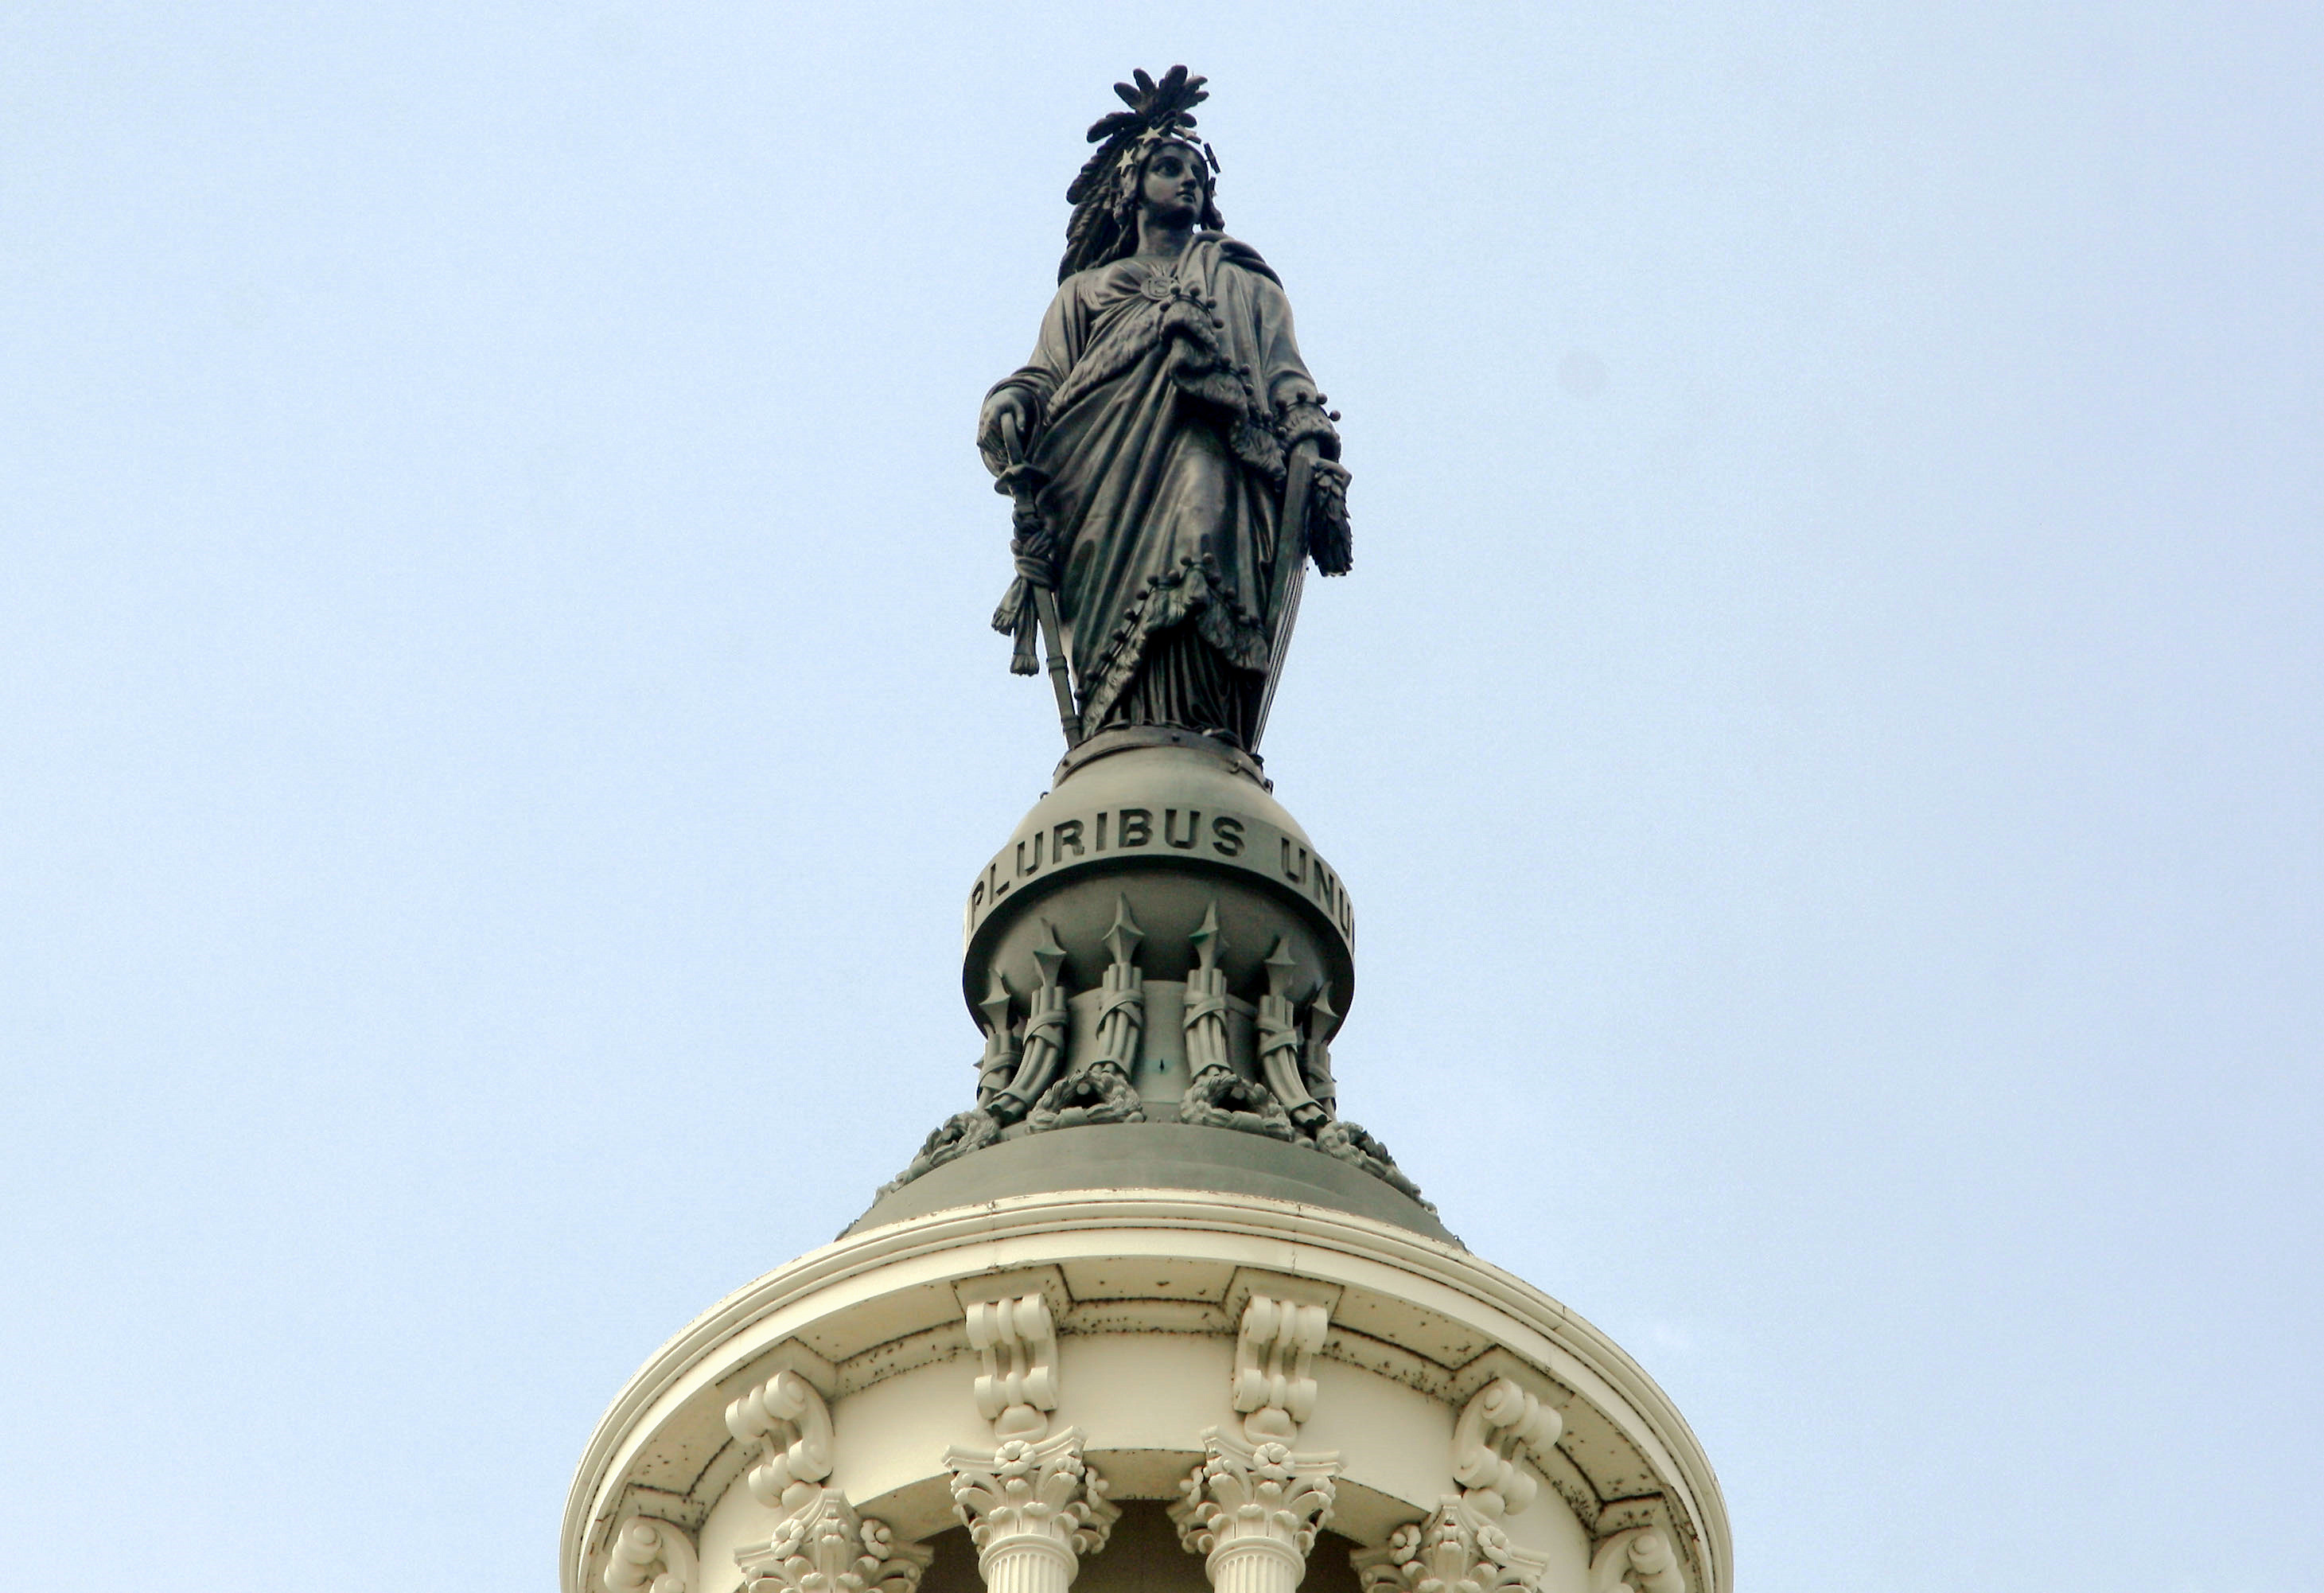 File:Statue of Freedom - United States Capitol.jpg - Wikimedia Commons